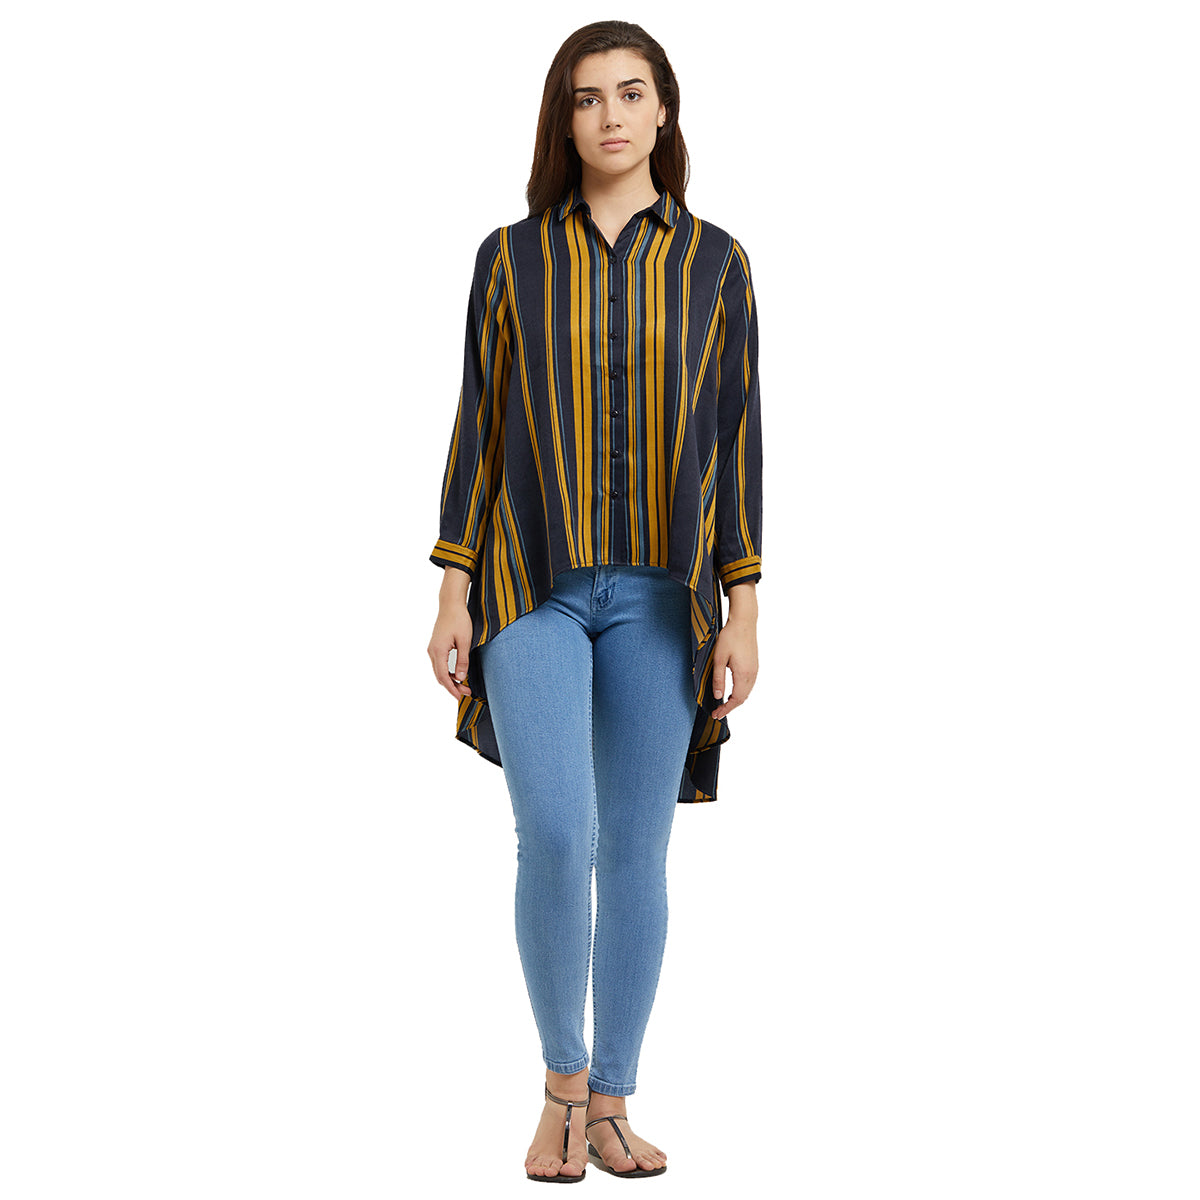 Navy Blue and Yellow Stripes High Low Shirt - www.109F.com 84decf4d29908